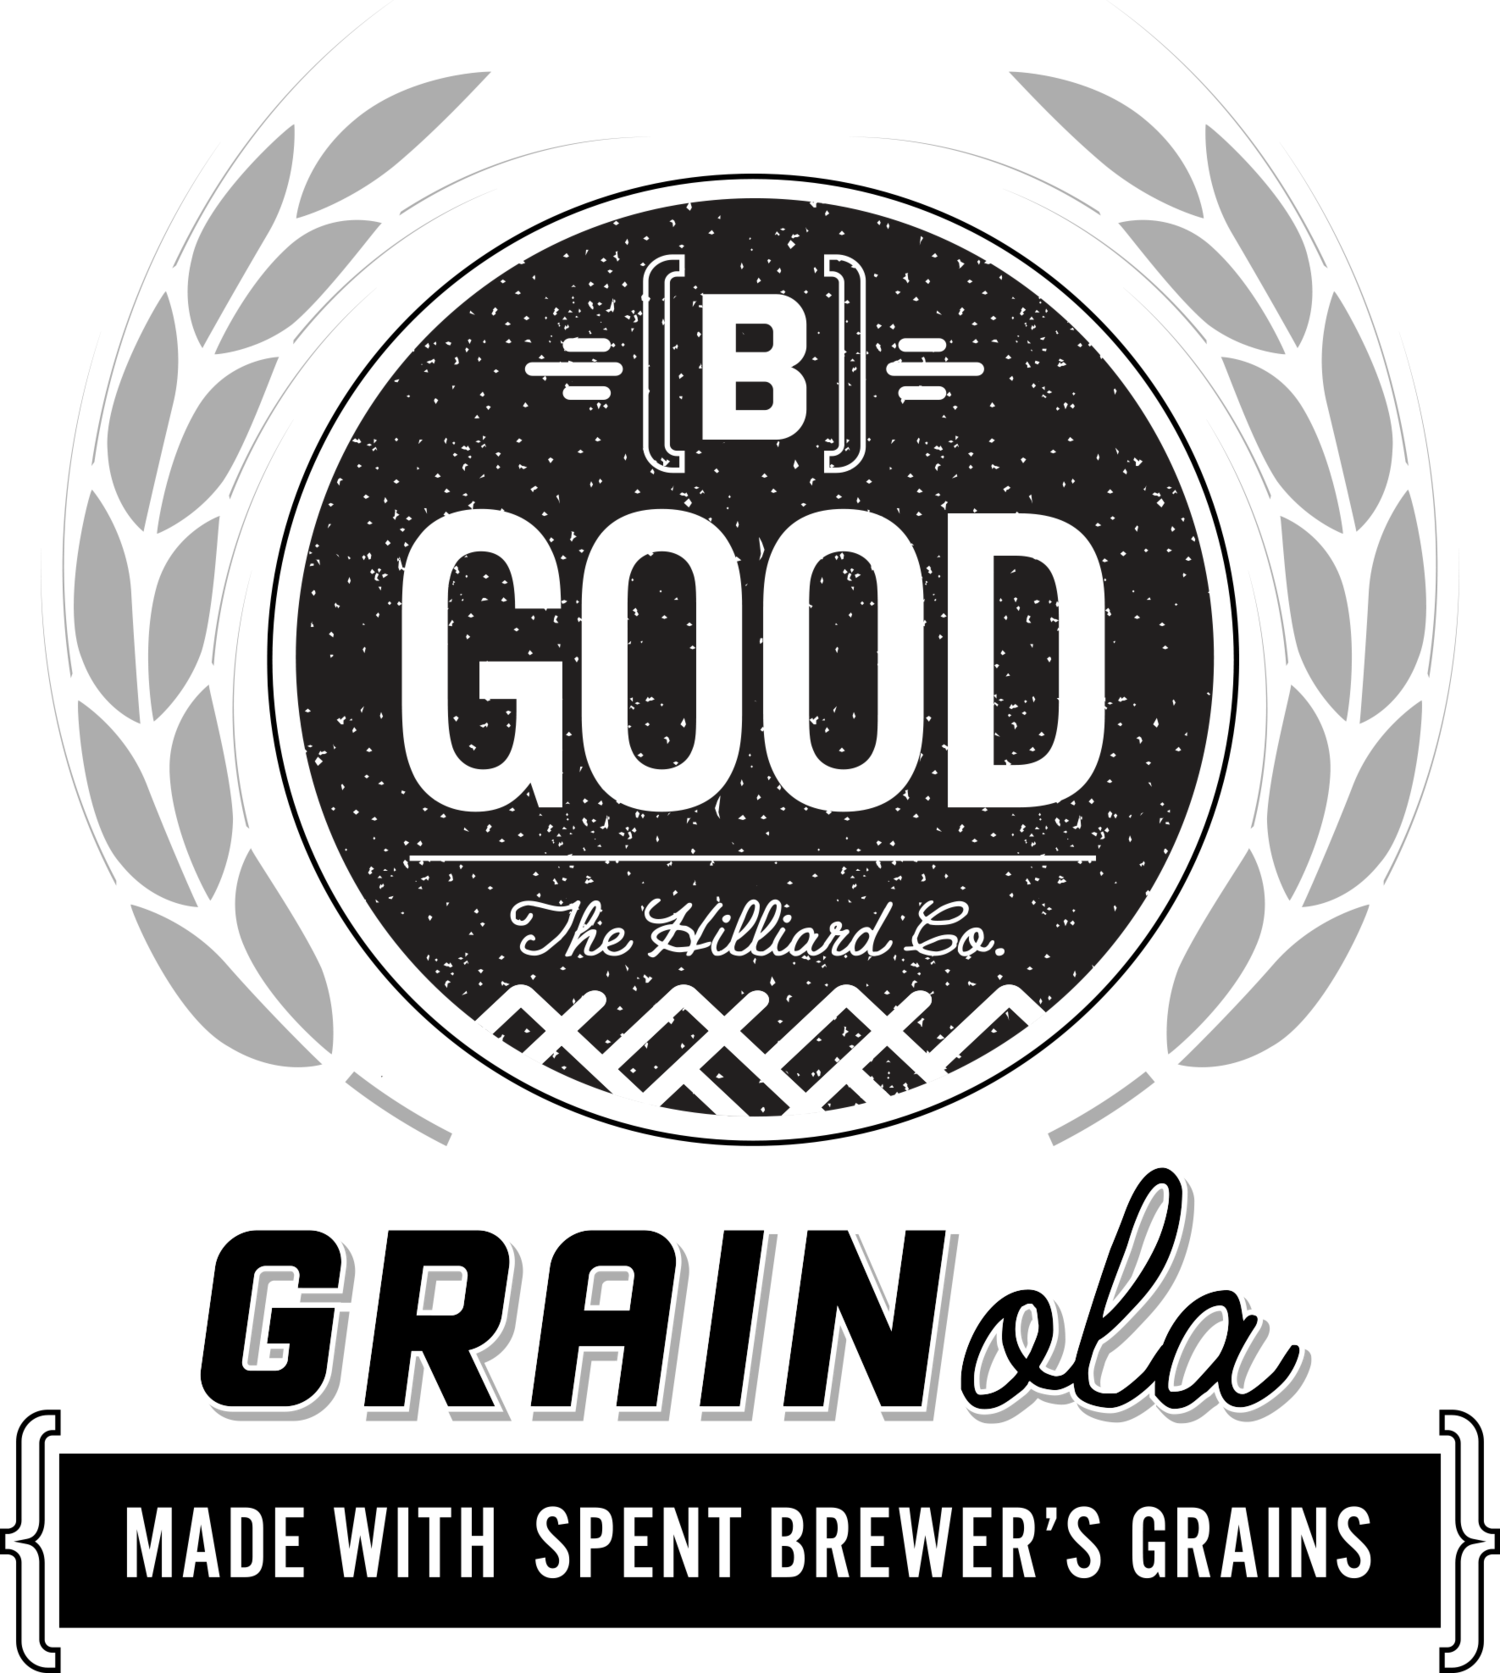 BGood Grainola